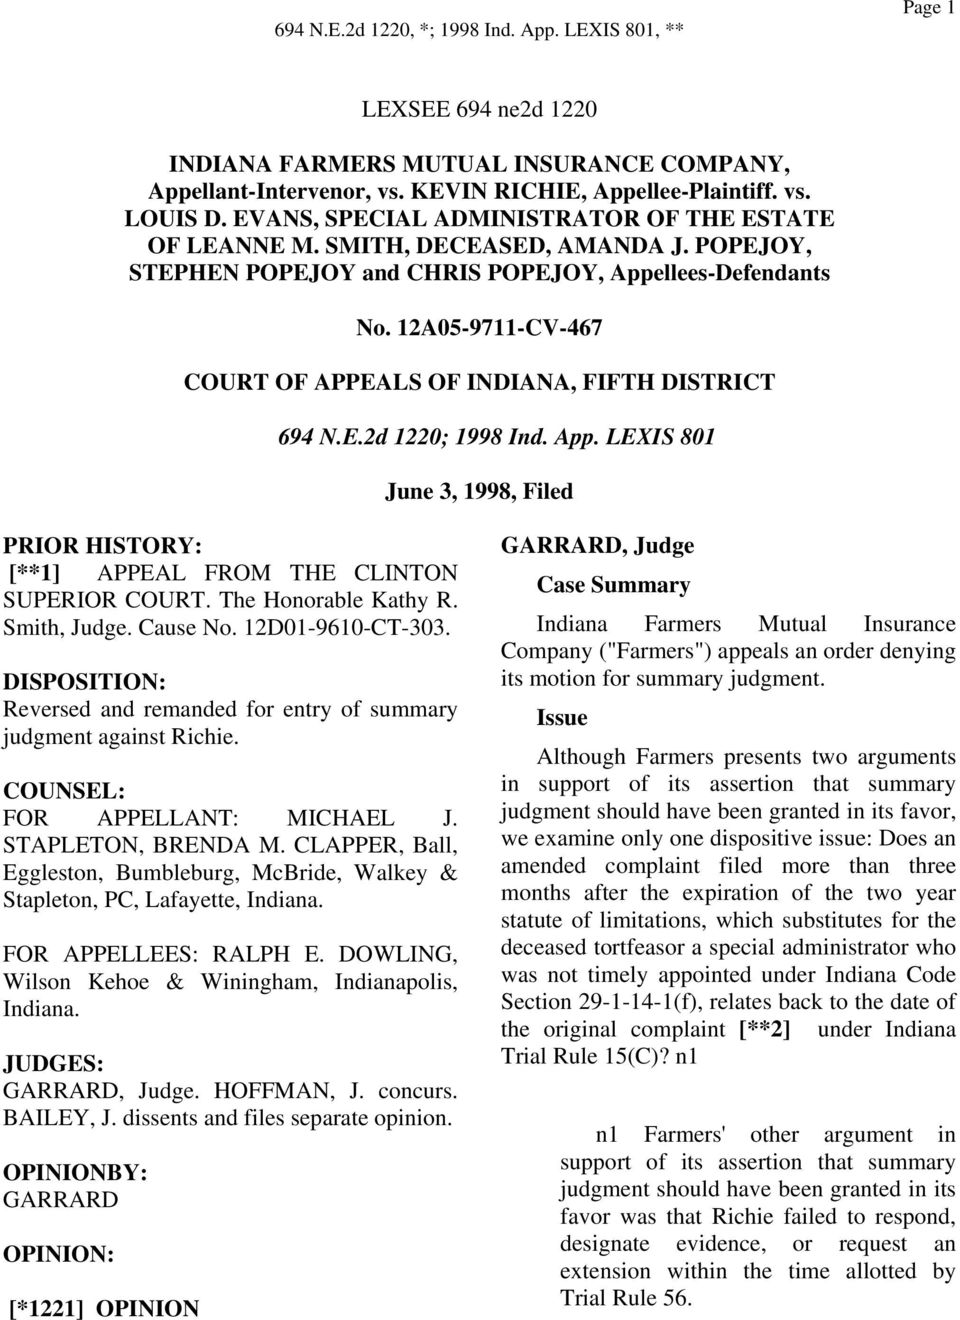 The Honorable Kathy R. Smith, Judge. Cause No. 12D01-9610-CT-303. DISPOSITION: Reversed and remanded for entry of summary judgment against Richie. COUNSEL: FOR APPELLANT: MICHAEL J.